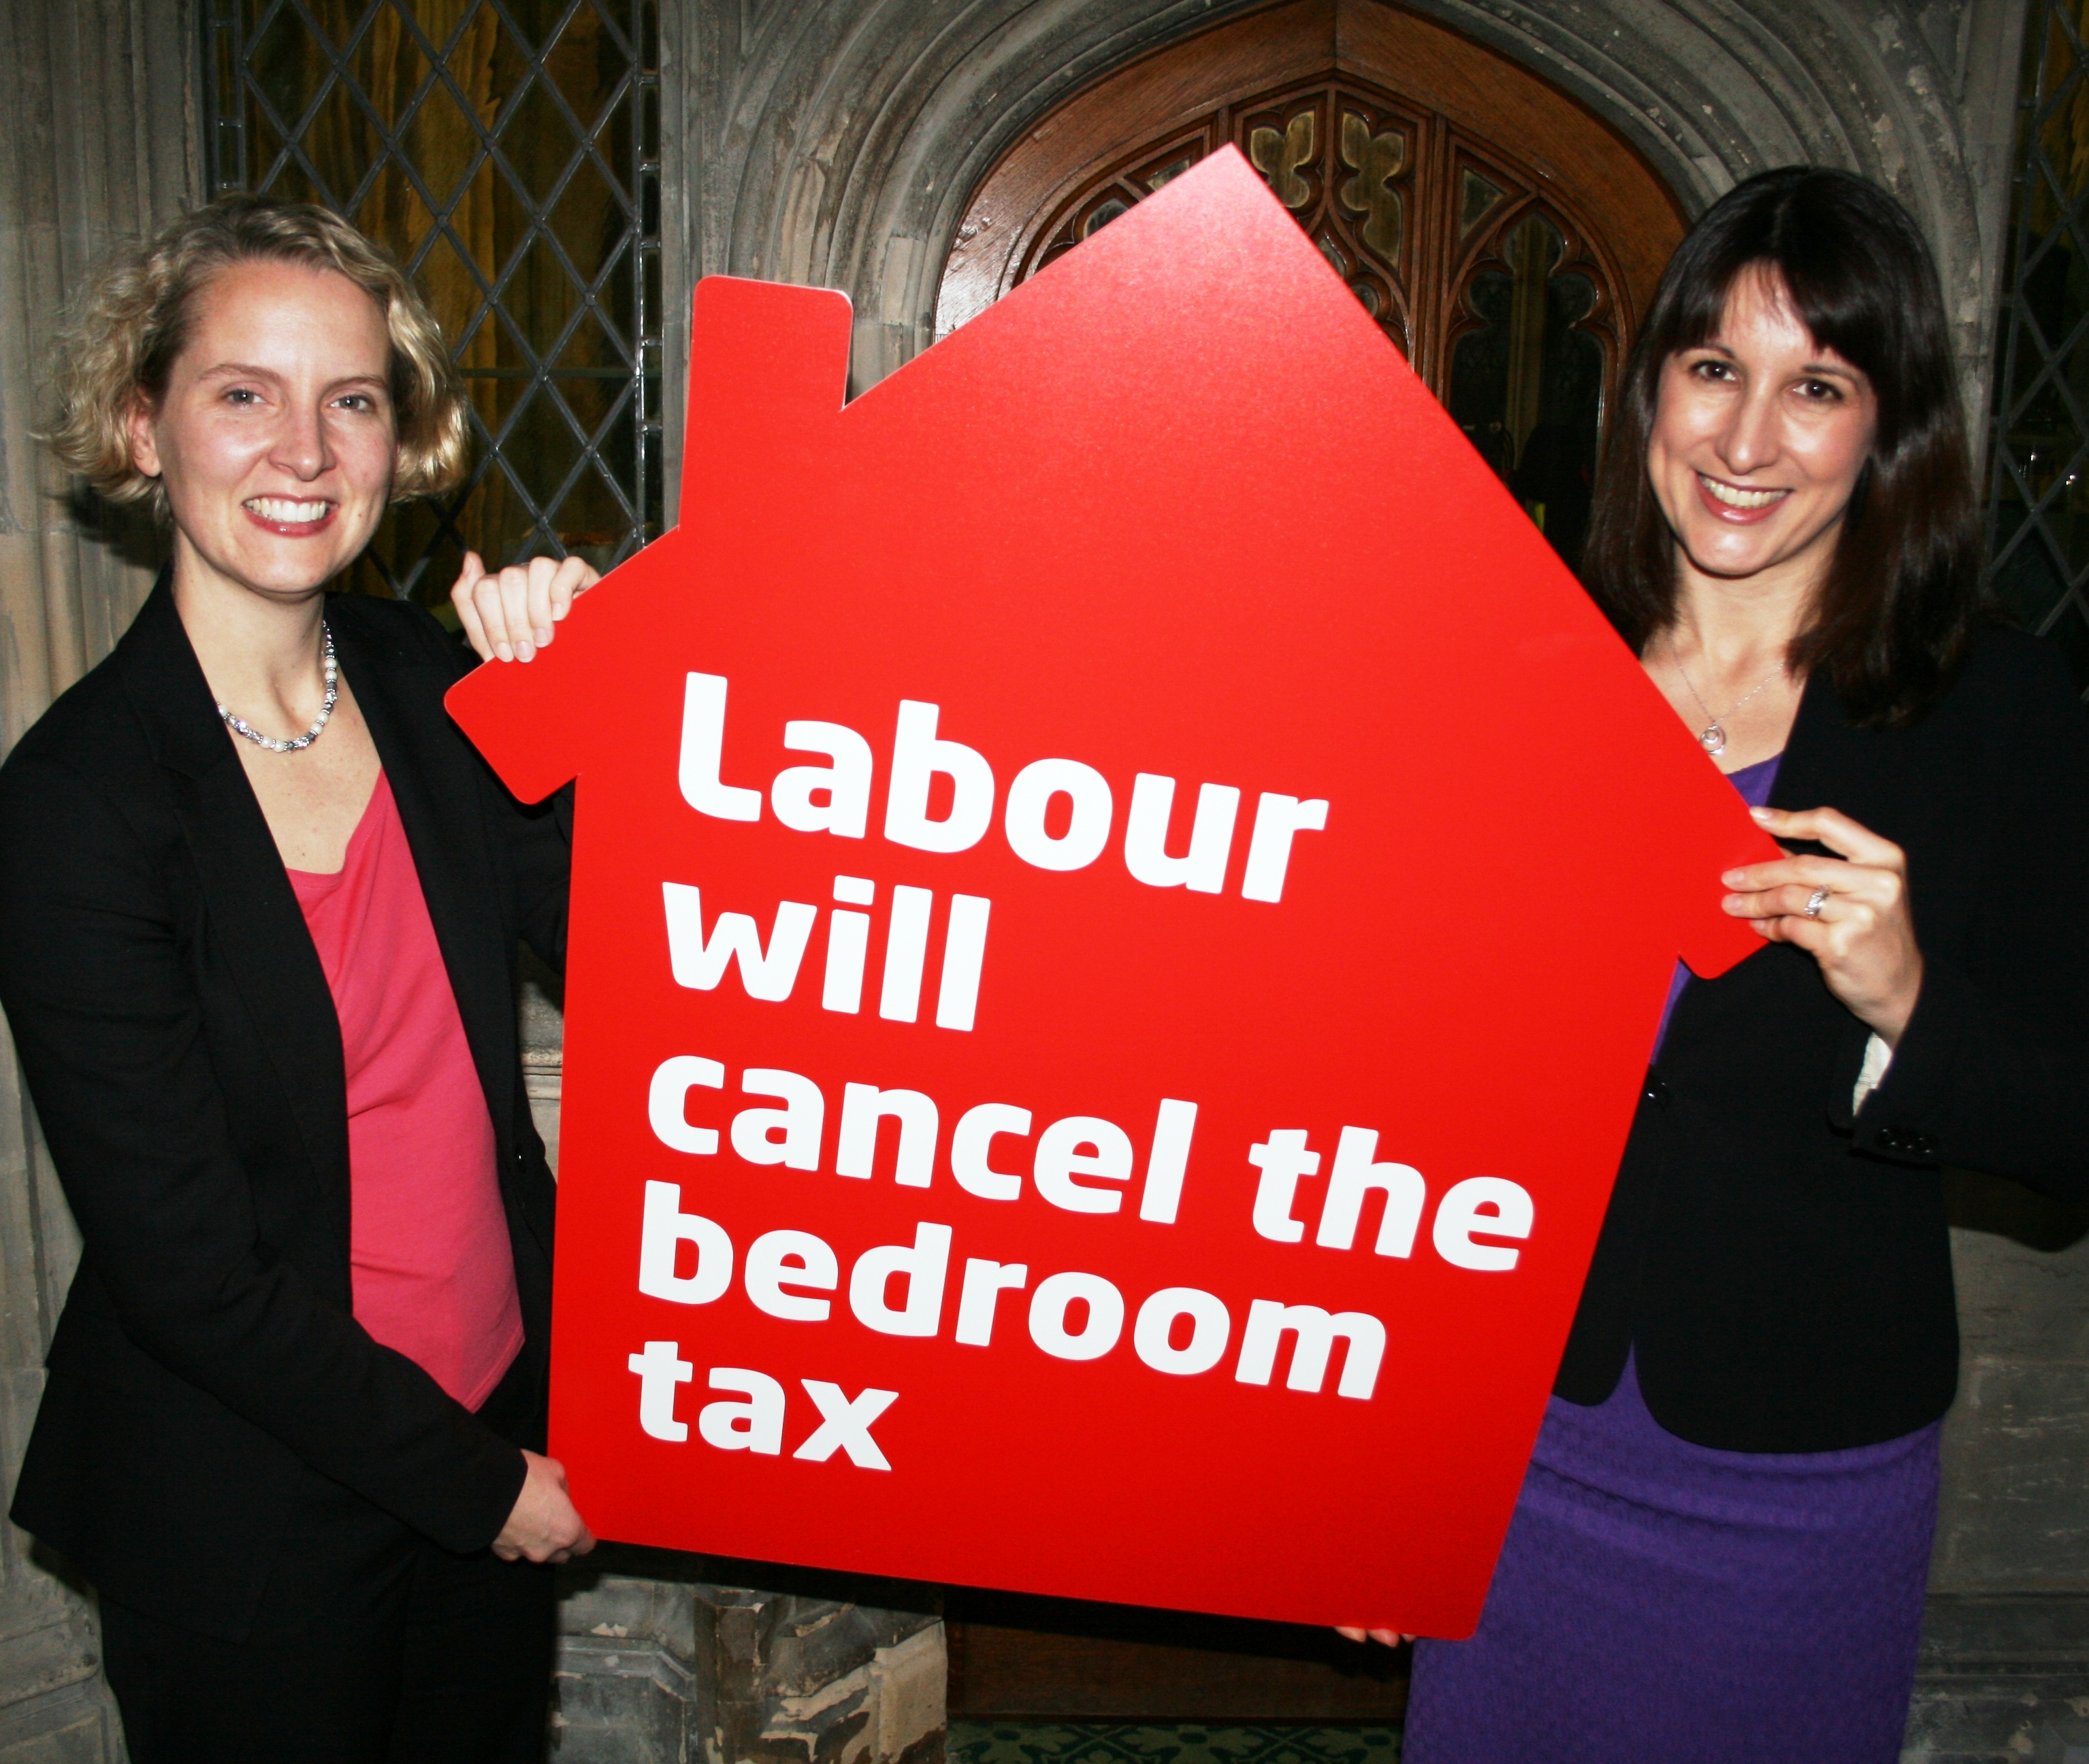 Emma Reynolds Mp Bedroom Tax Is An Attack On Social Housing And